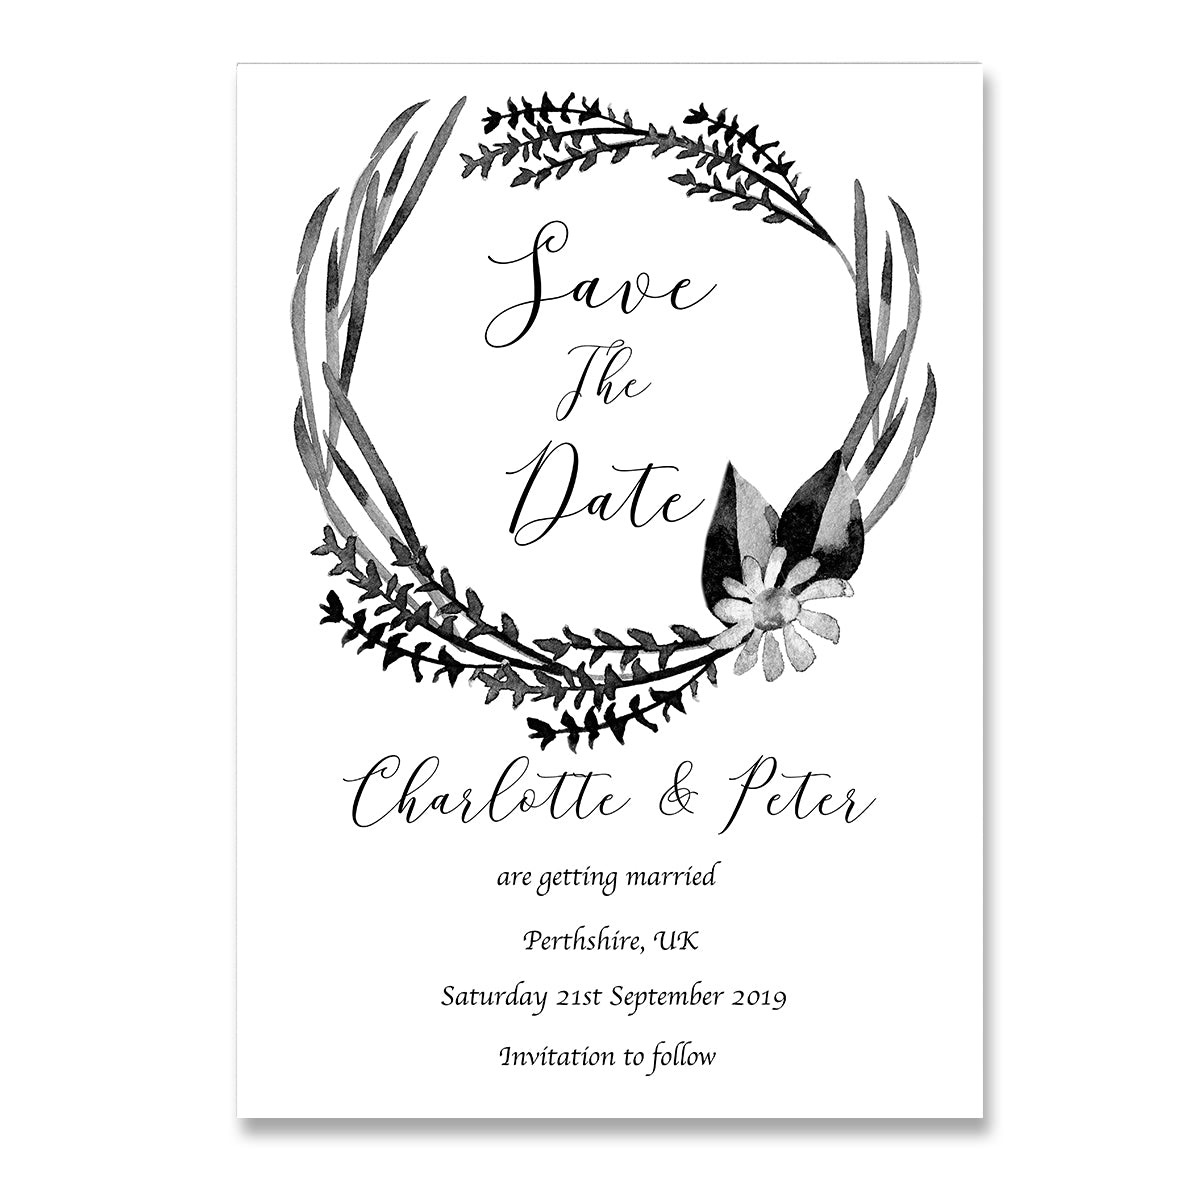 Black And White Watercolour Save The Dates Wedding Card-Wedding Stationary-Mode Prints